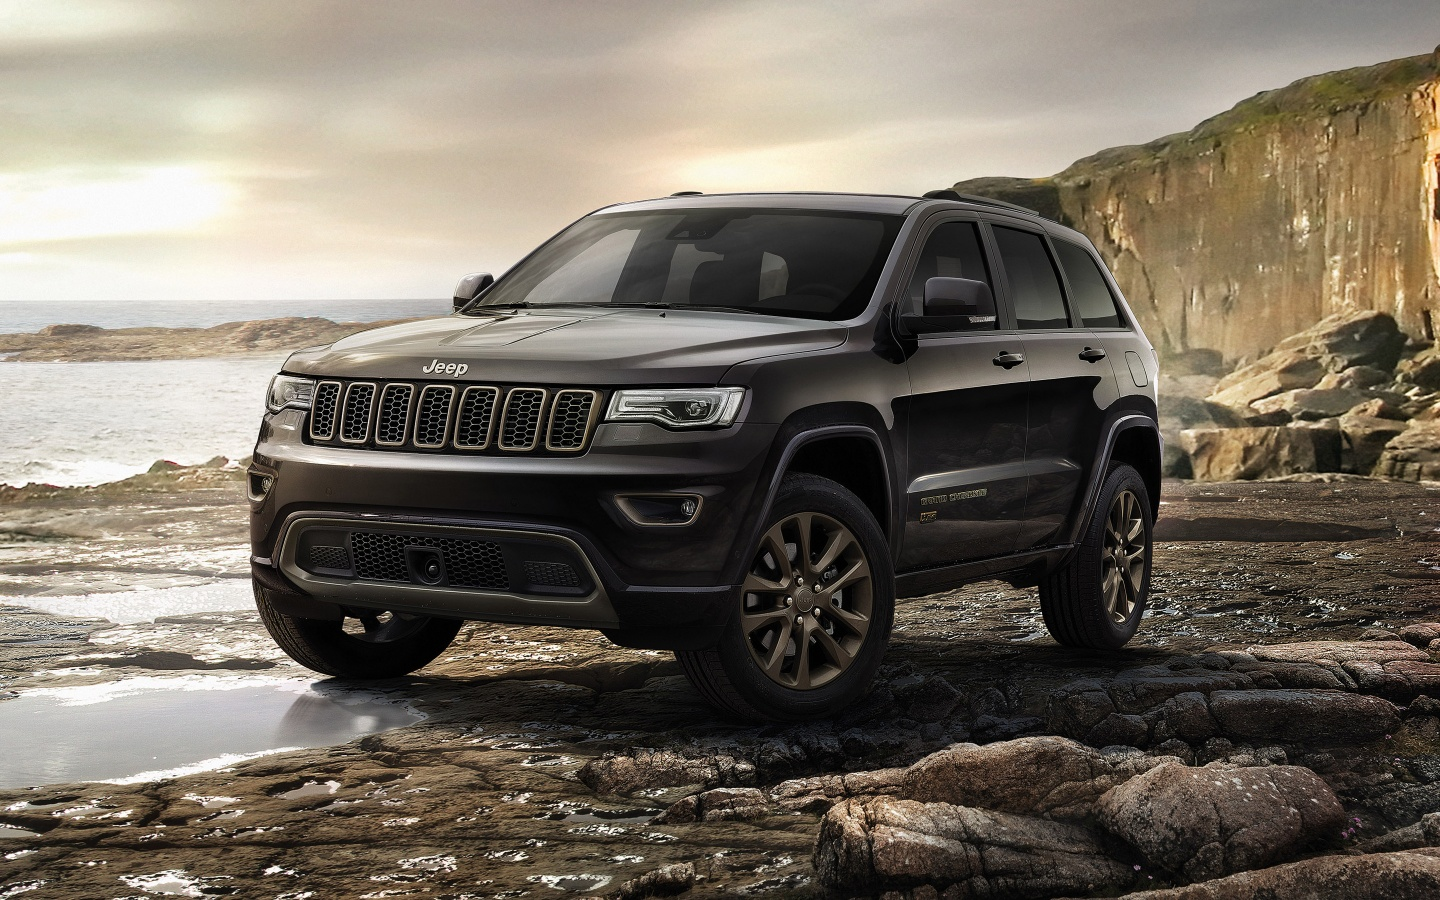 Car Wallpaper Jeep Latest Models Wallpaper Wallpapers Engine